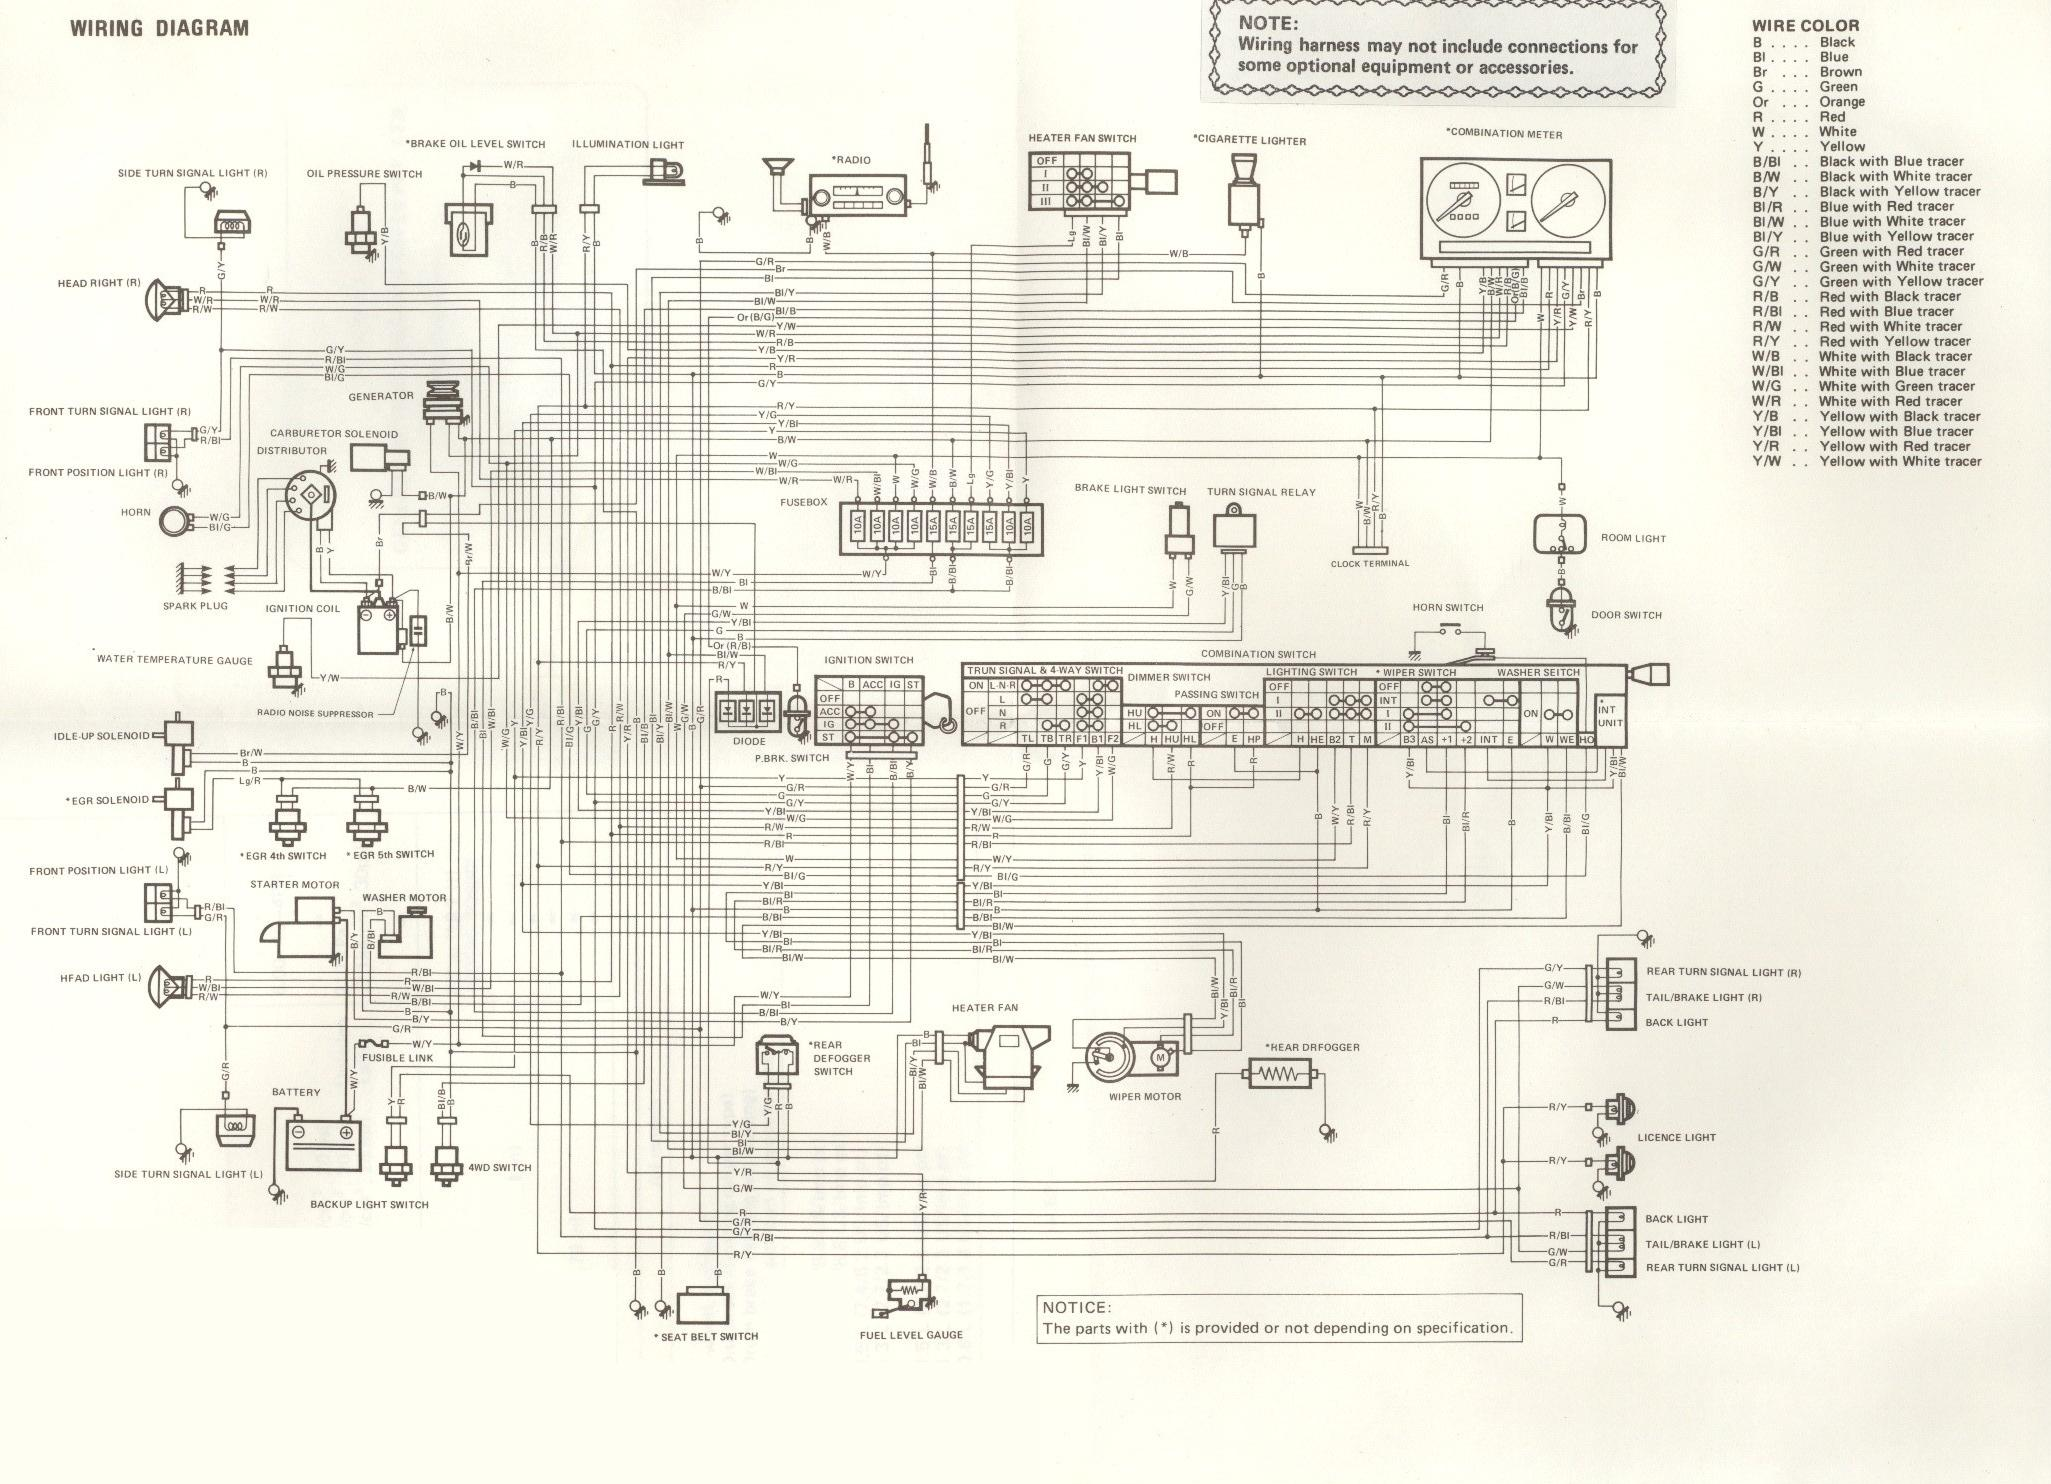 suzuki samurai wiringdiagram LJDoMre suzuki carry wiring diagram efcaviation com suzuki samurai wiring diagrams asfachs at nearapp.co